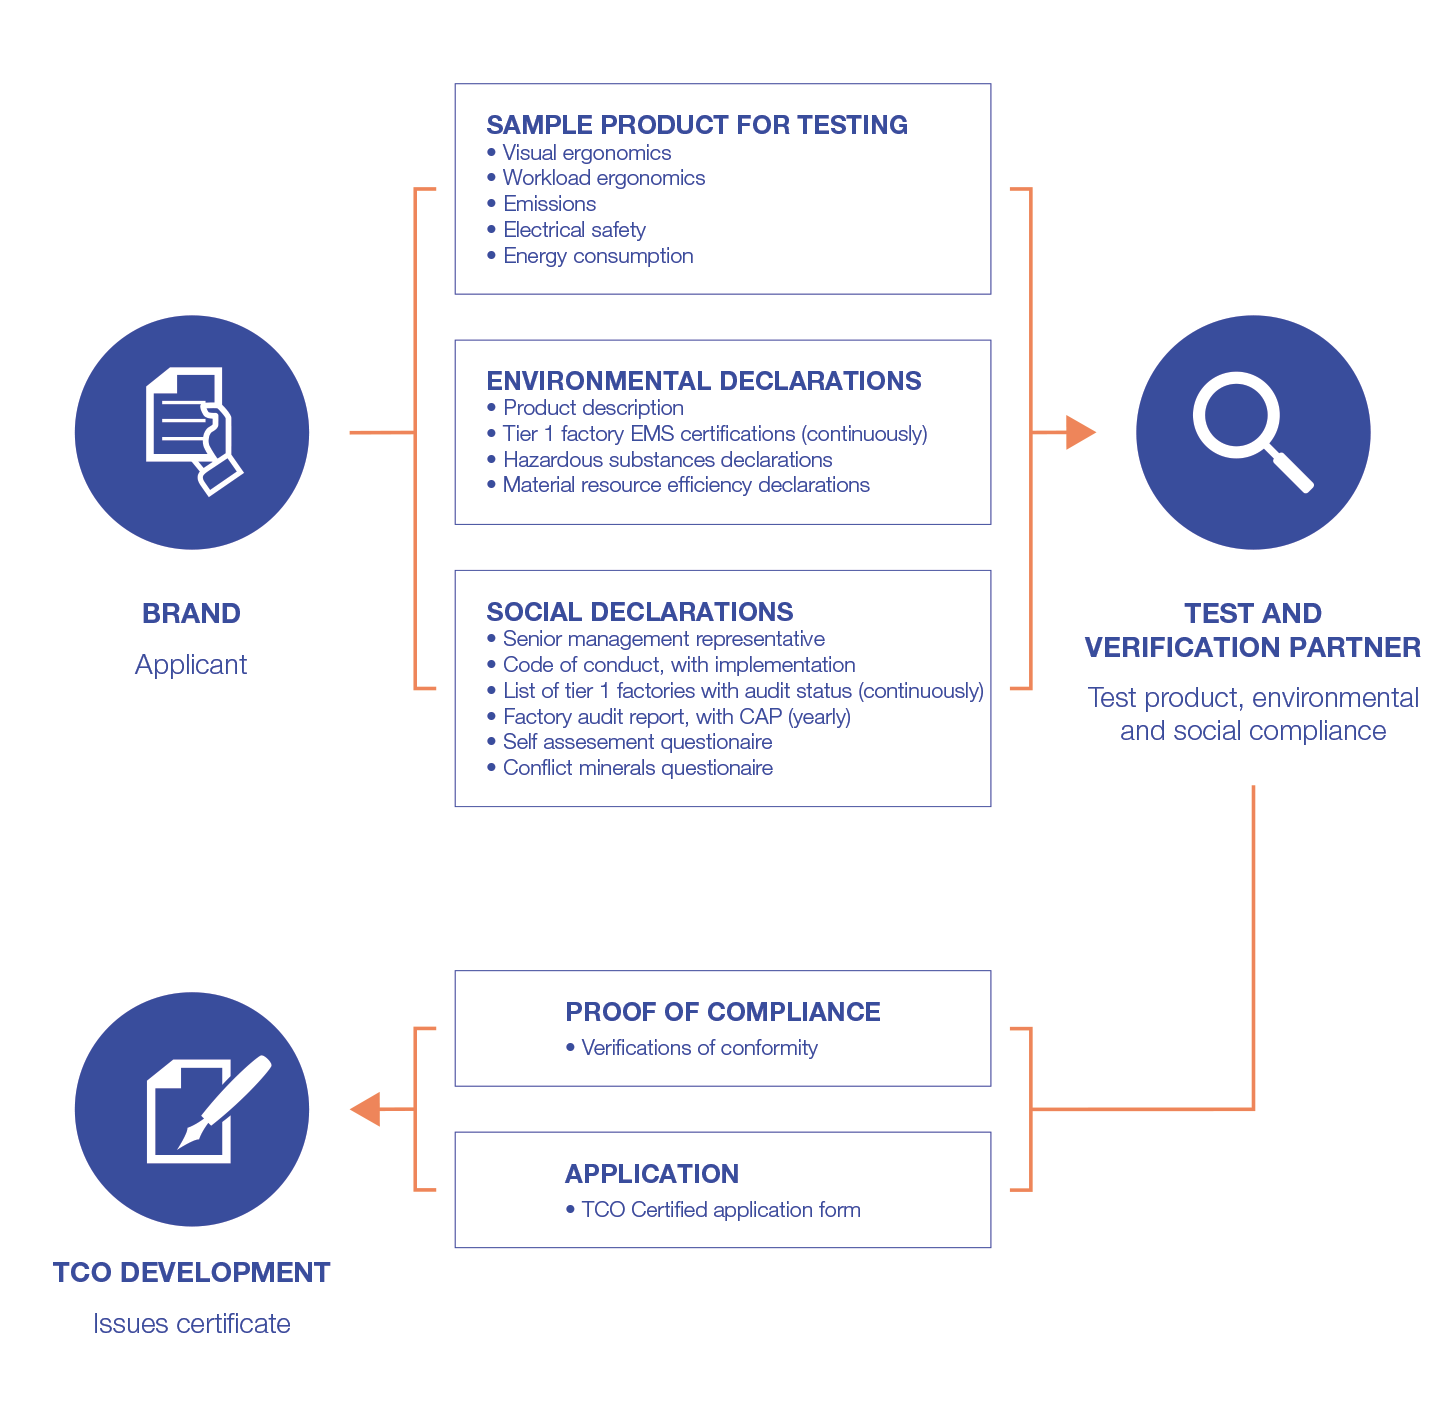 tco introduction Best value toolkit tco exercise introduction to further demonstrate the  decision support value of performing total cost of ownership (tco) analysis, we  have.